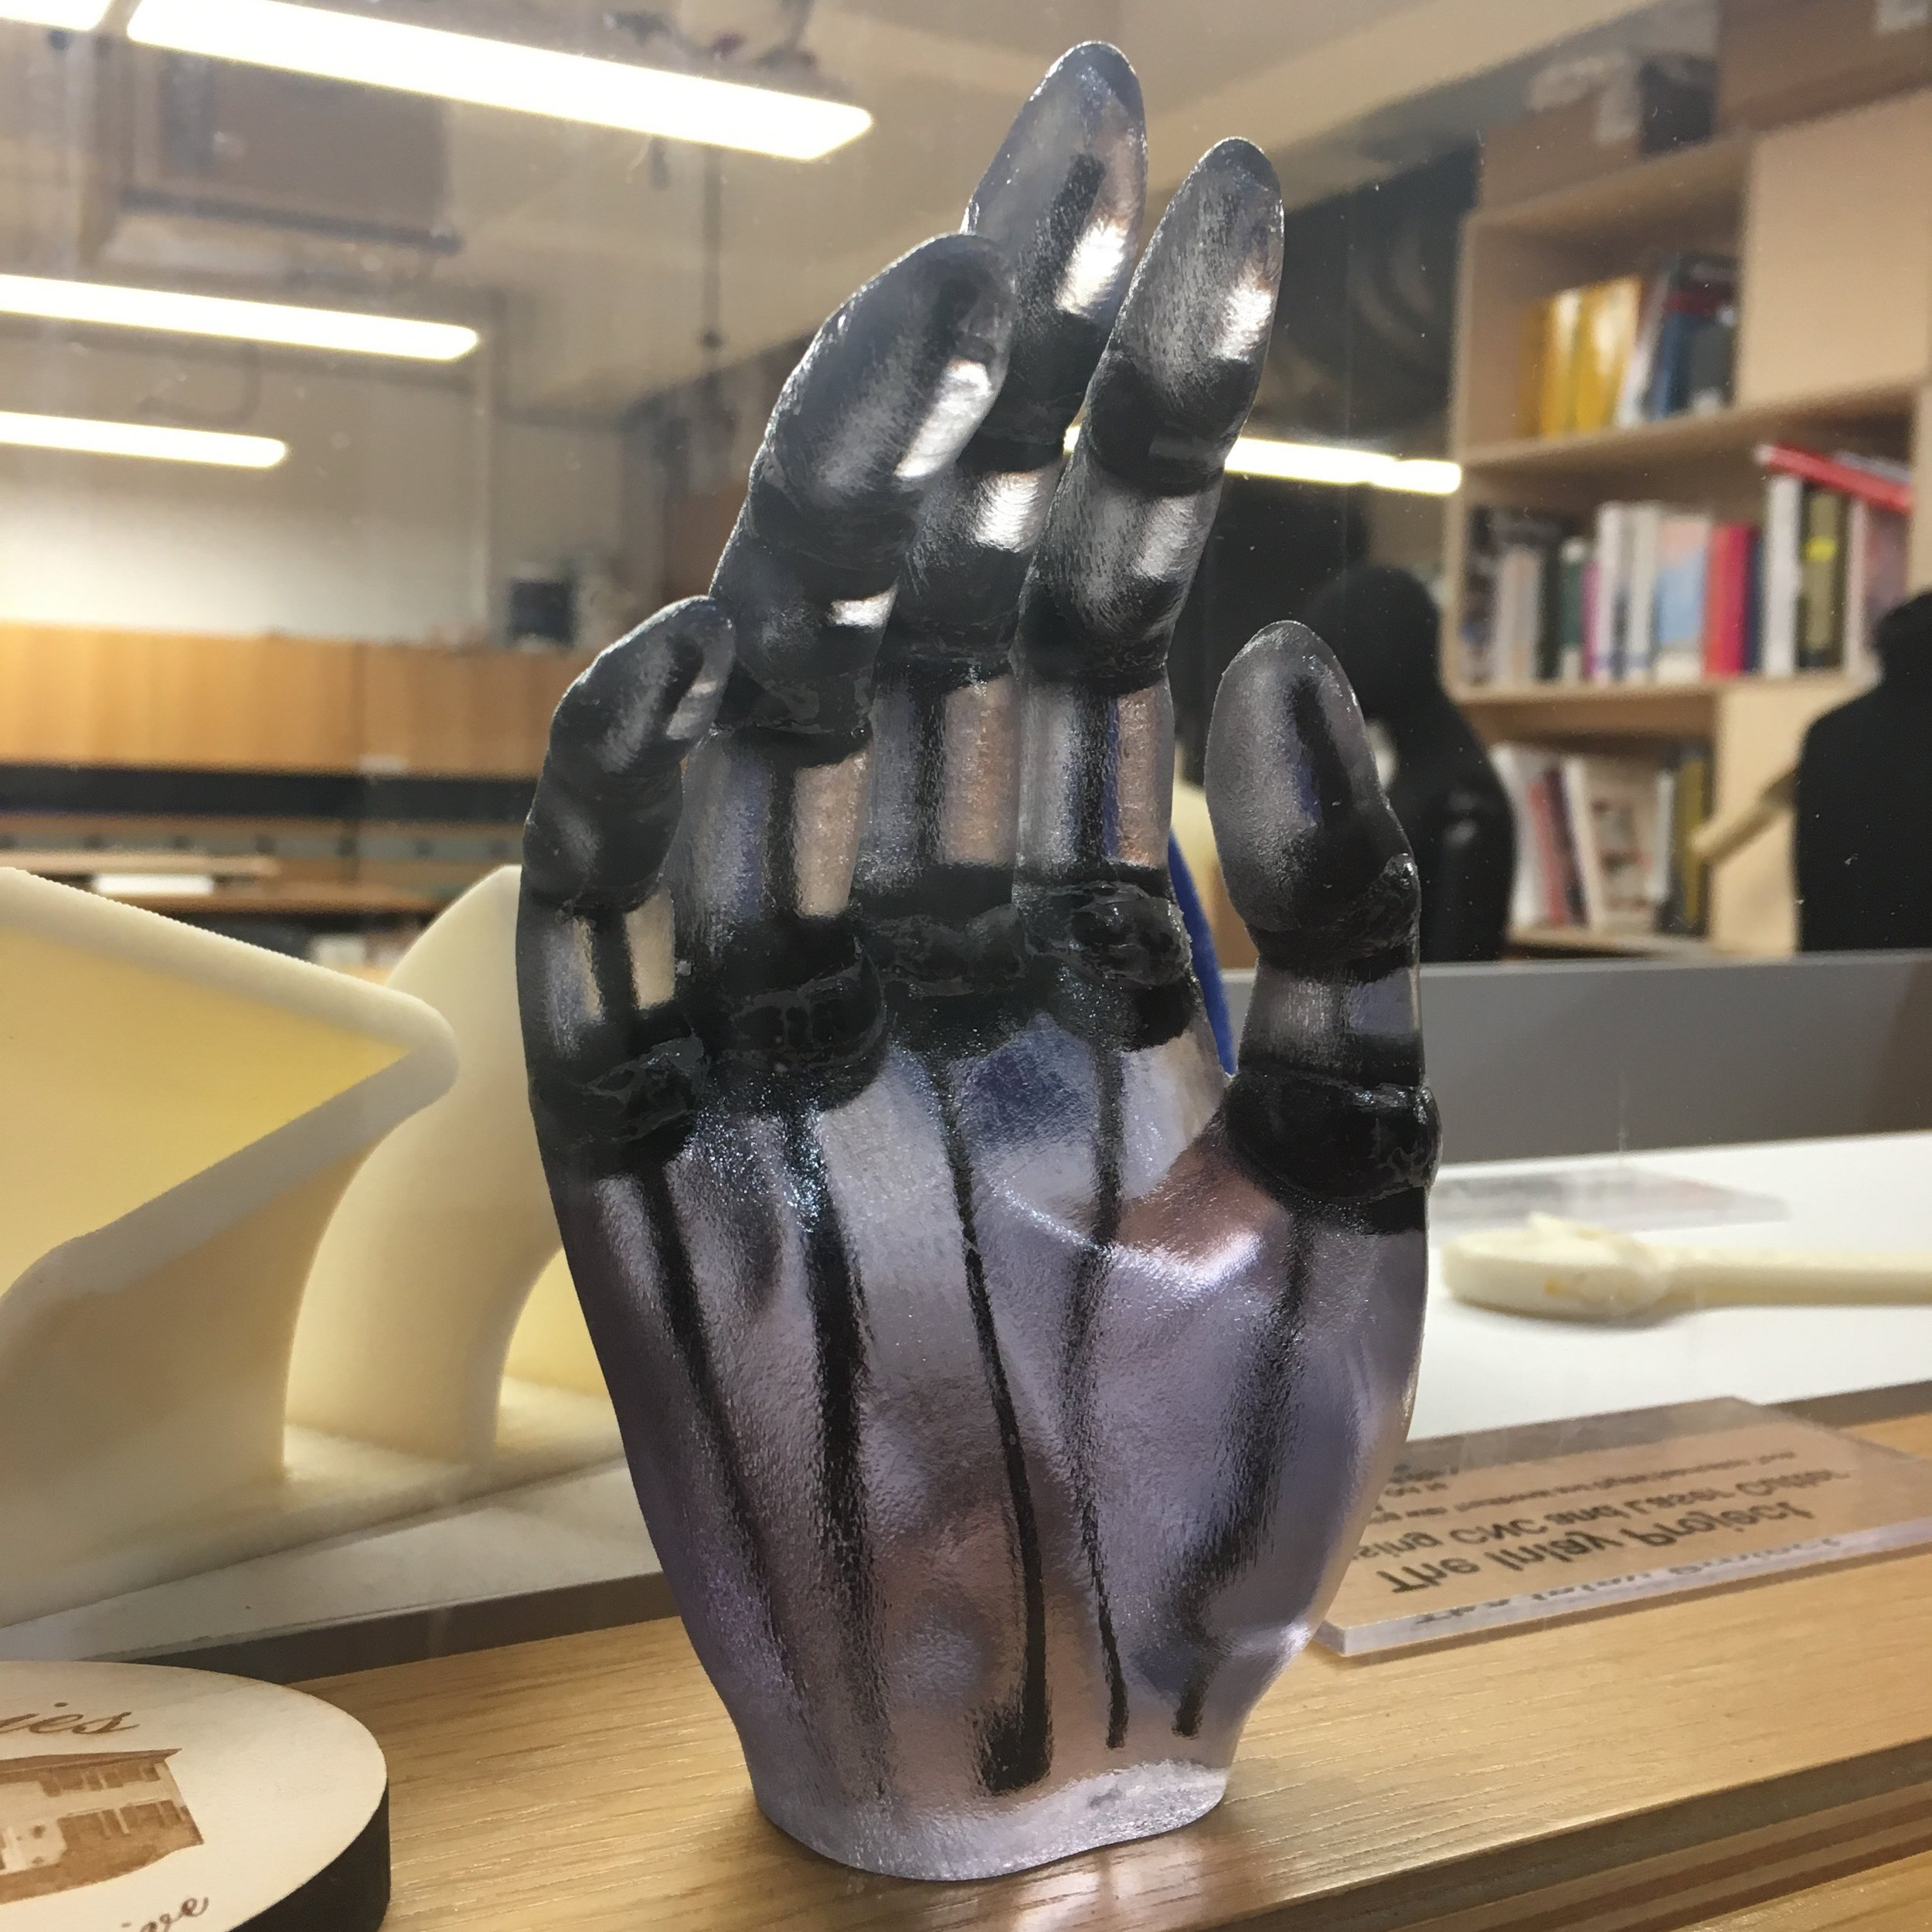 Hand print with articulated joints.